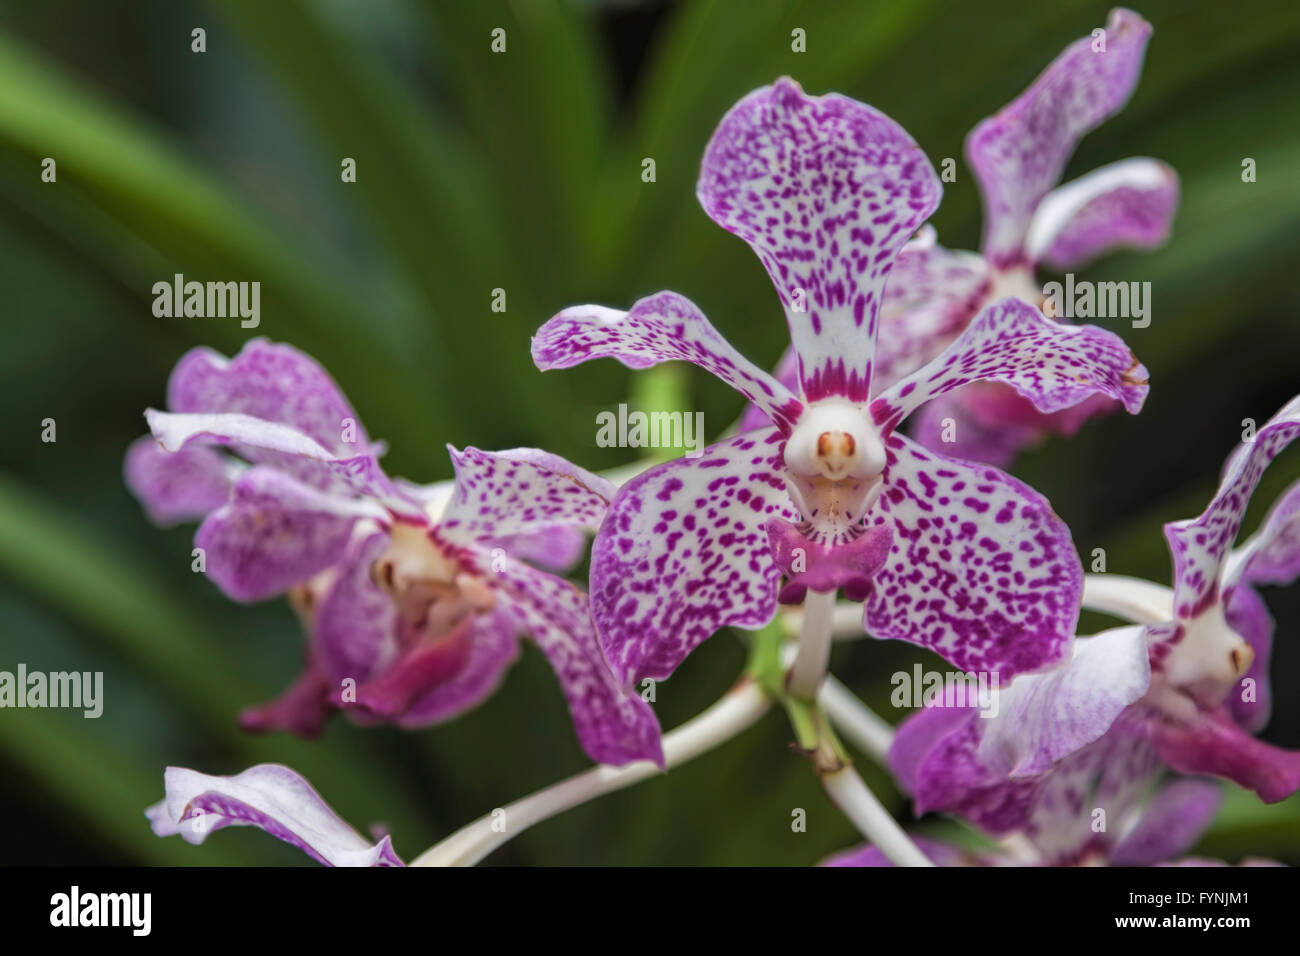 Orchid (Orchidaceae) in the botanical garden, National Orchid Garden in Singapore, Southeast Asia - Stock Image